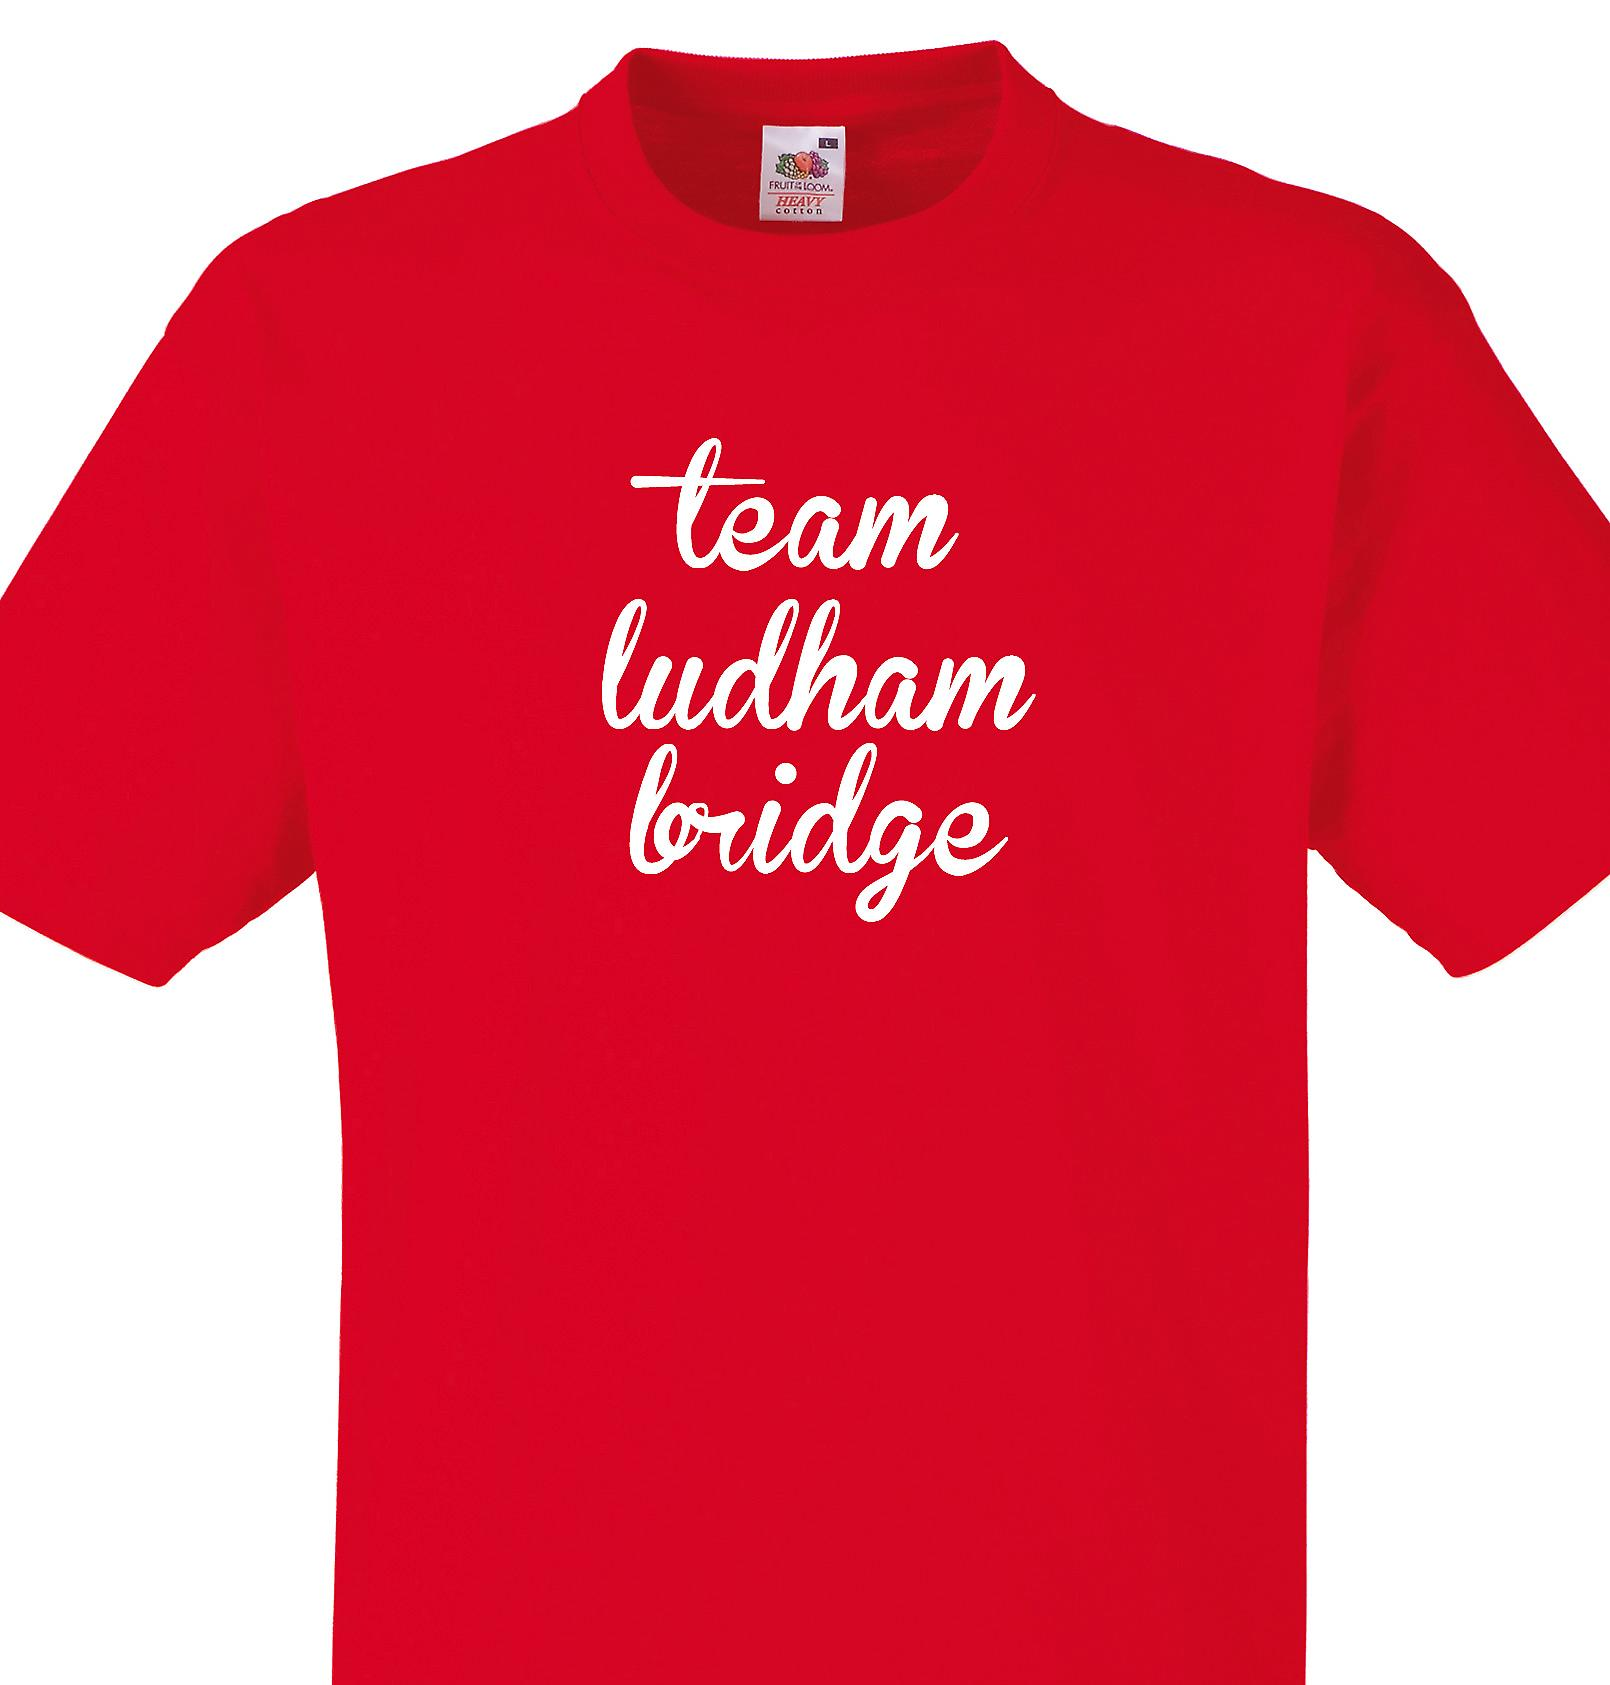 Team Ludham bridge Red T shirt